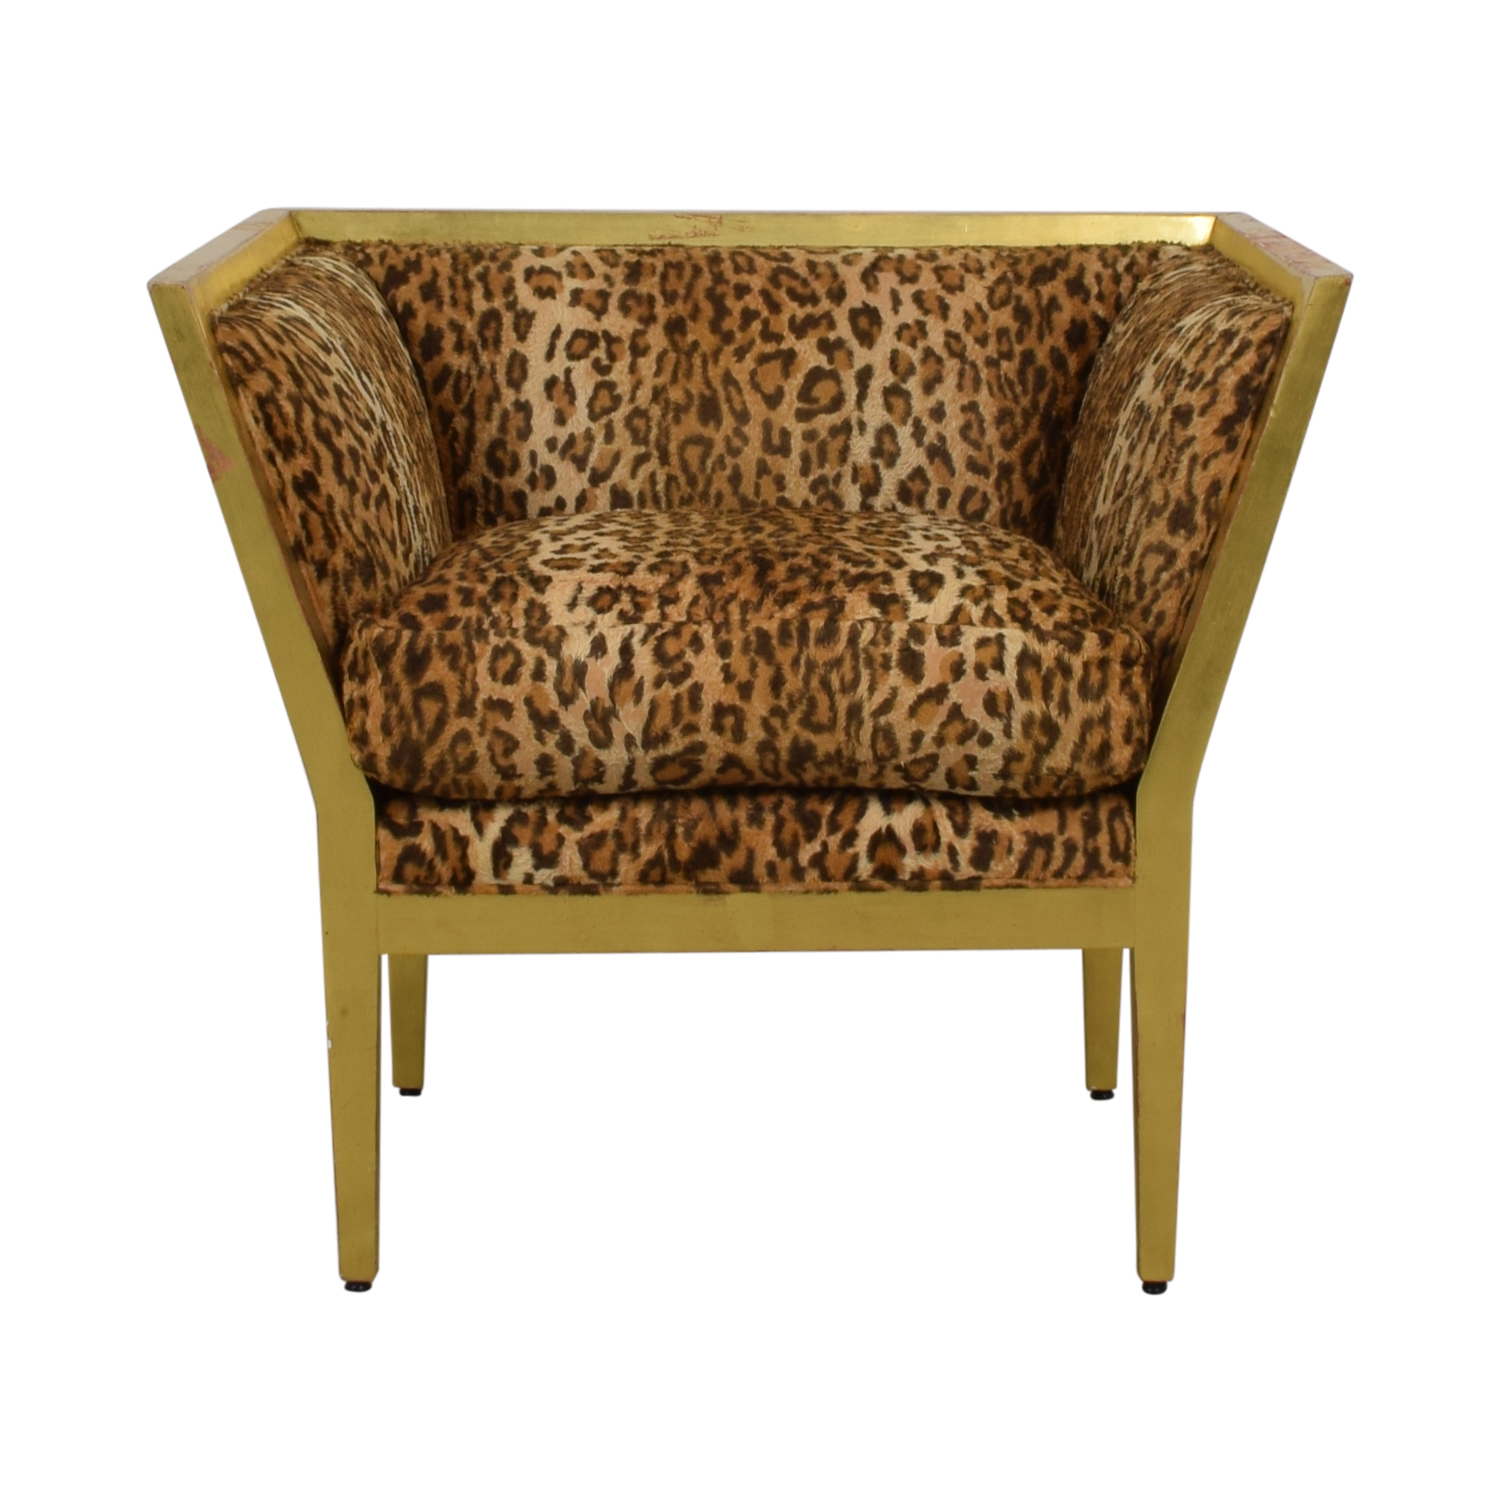 Furniture Masters Furniture Masters Leopard Distressed Accent Chair nj